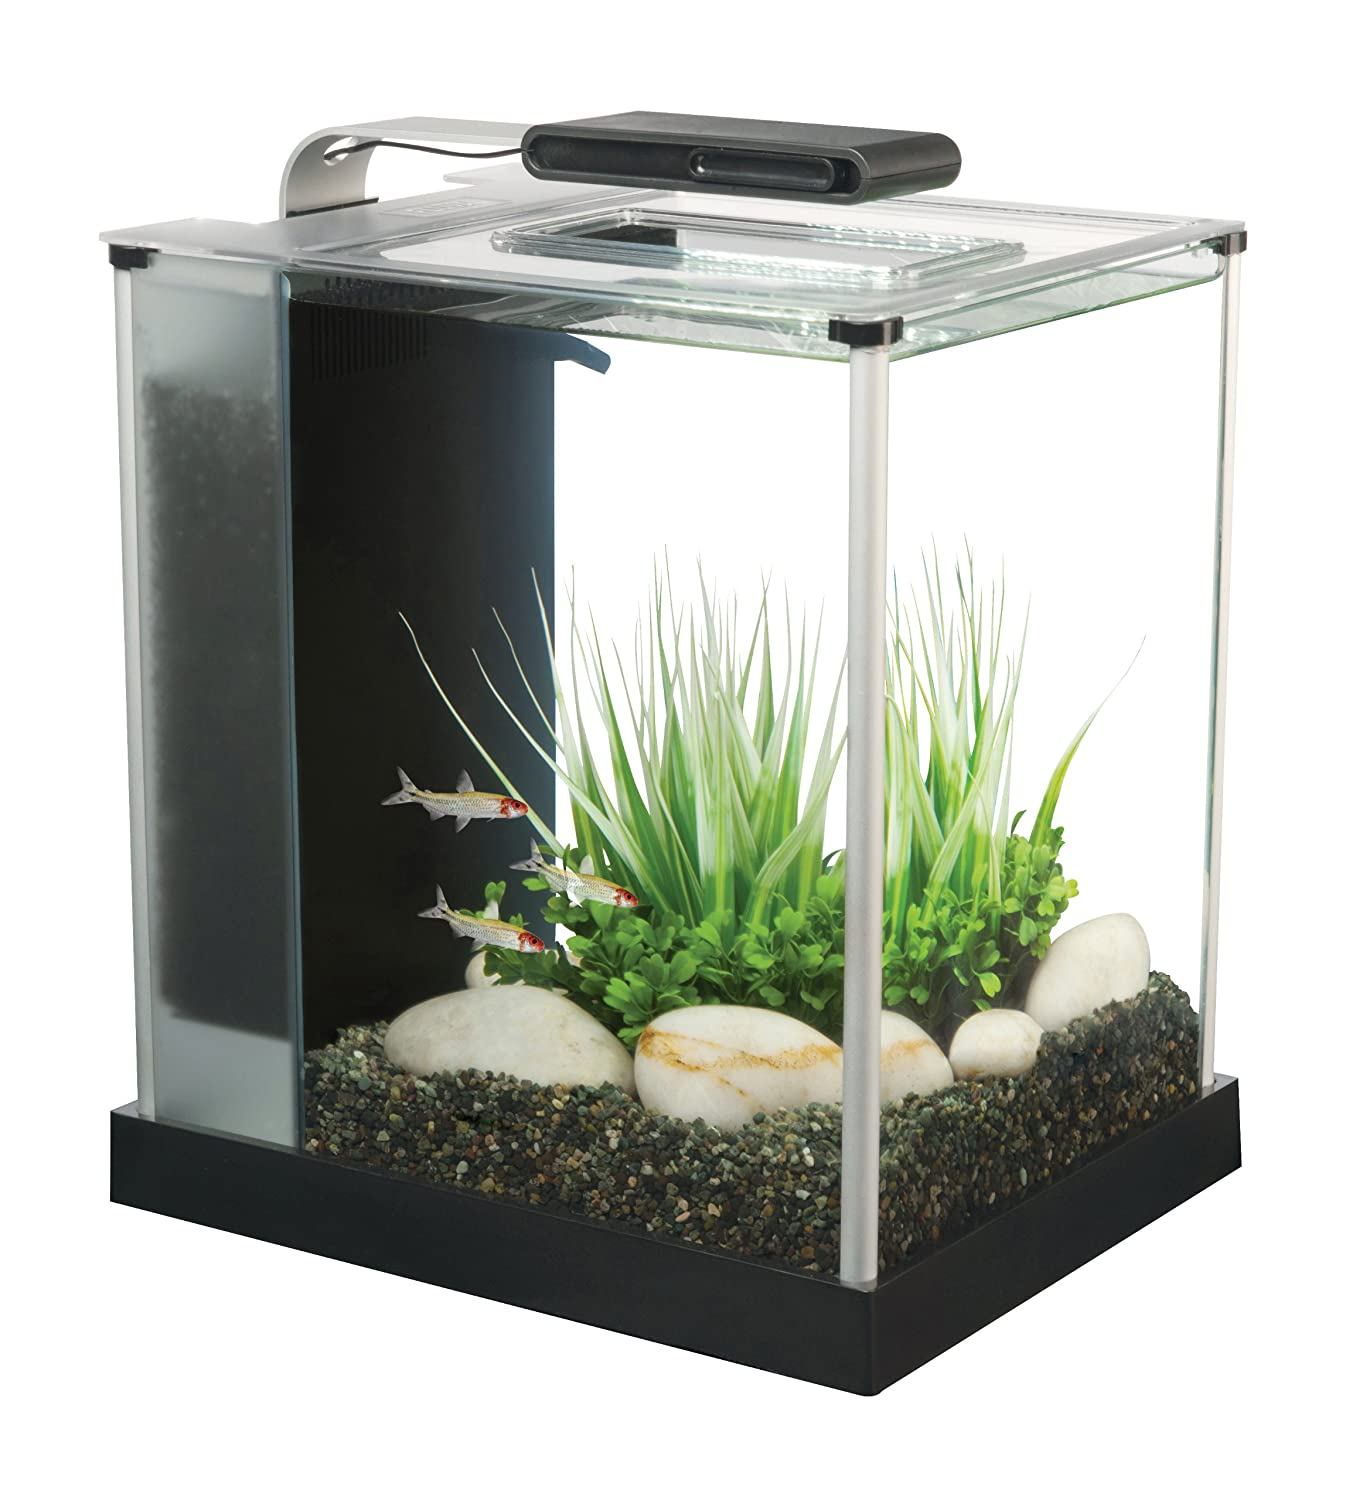 Small nano aquarium fish tank tropical - Fluval Spec Iii Aquarium Kit 2 6 Gallon Black